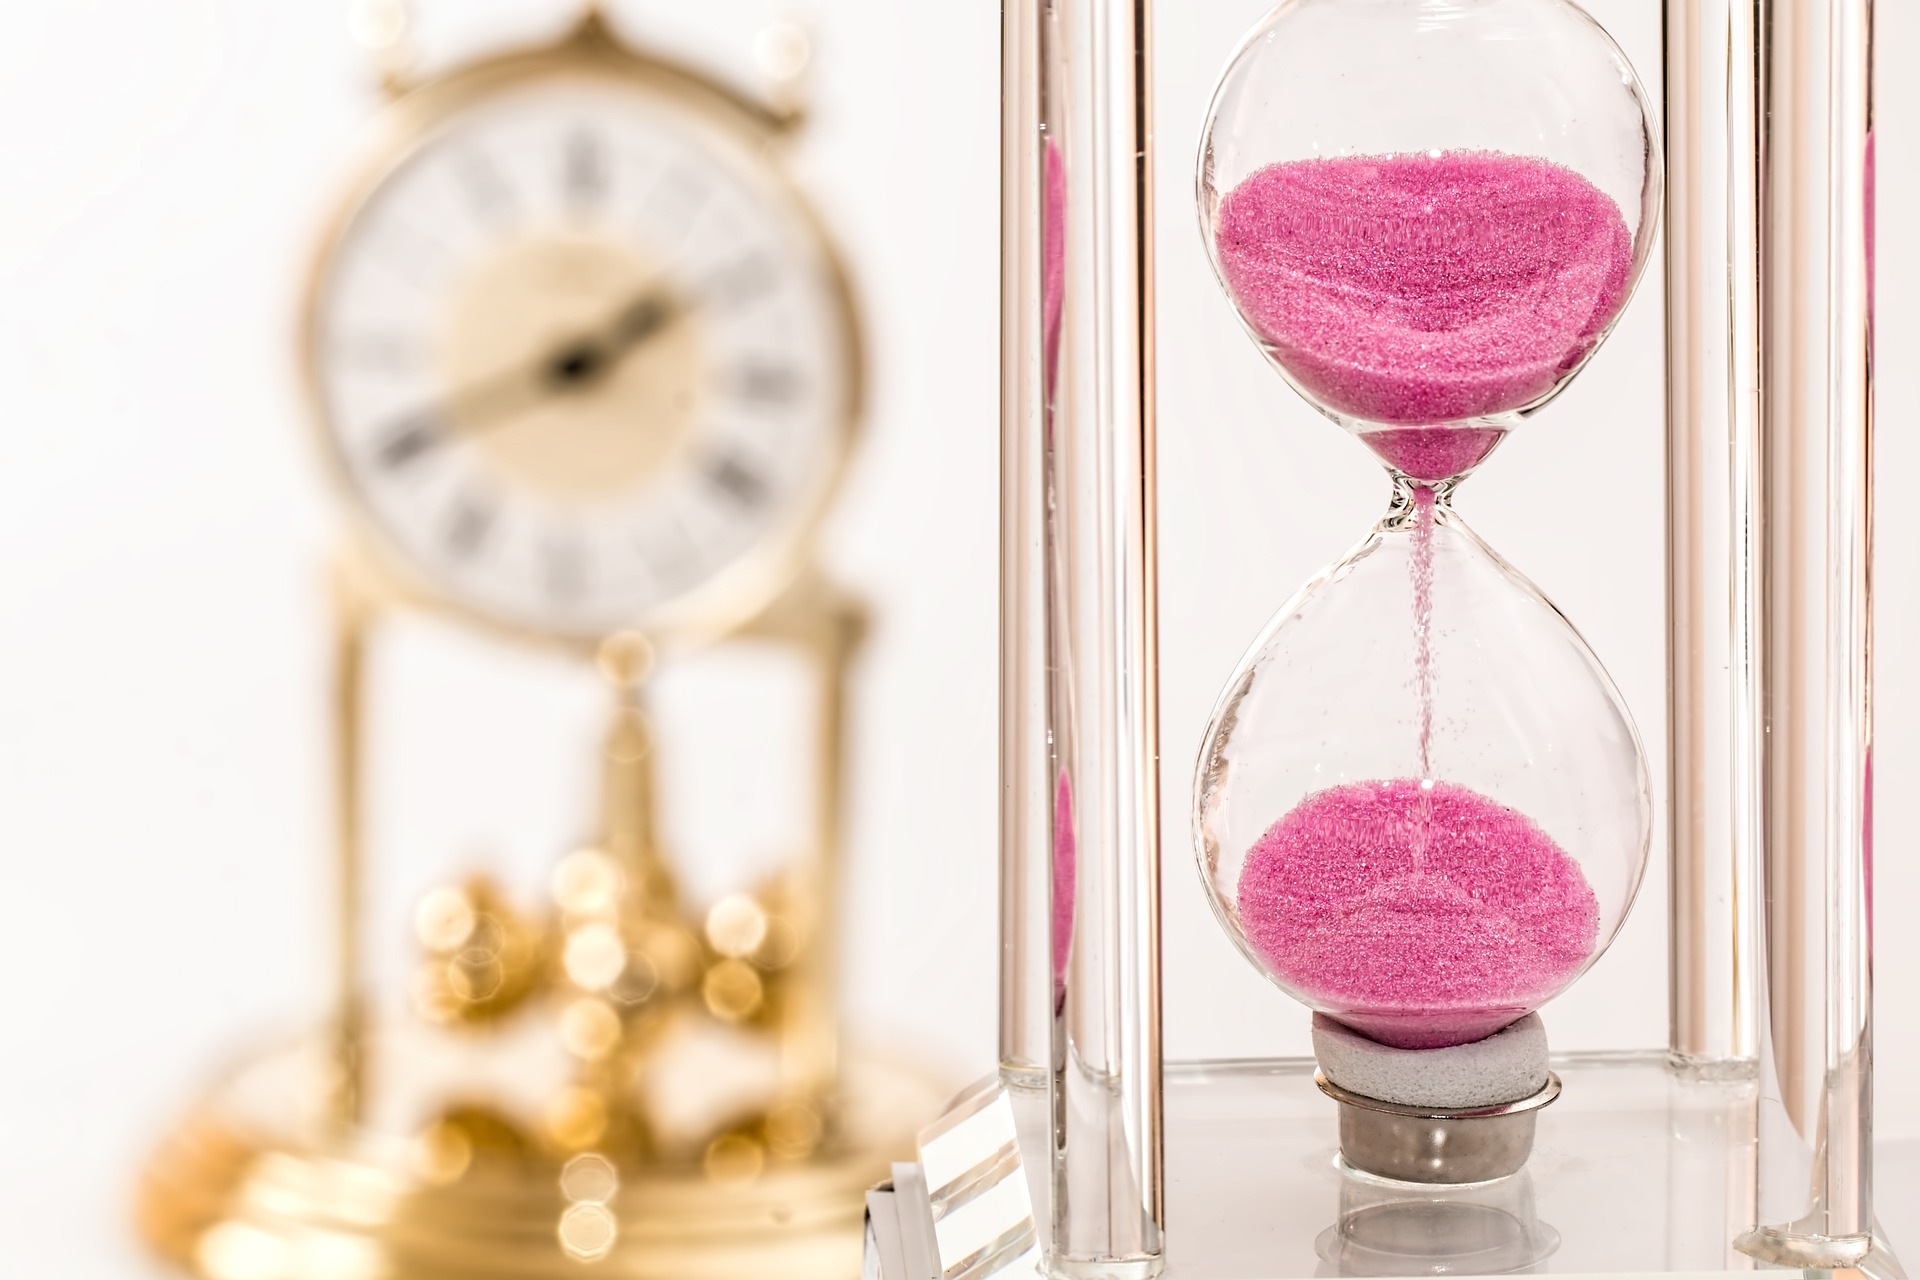 Image credit: https://pixabay.com/en/hourglass-clock-time-deadline-hour-1703330/